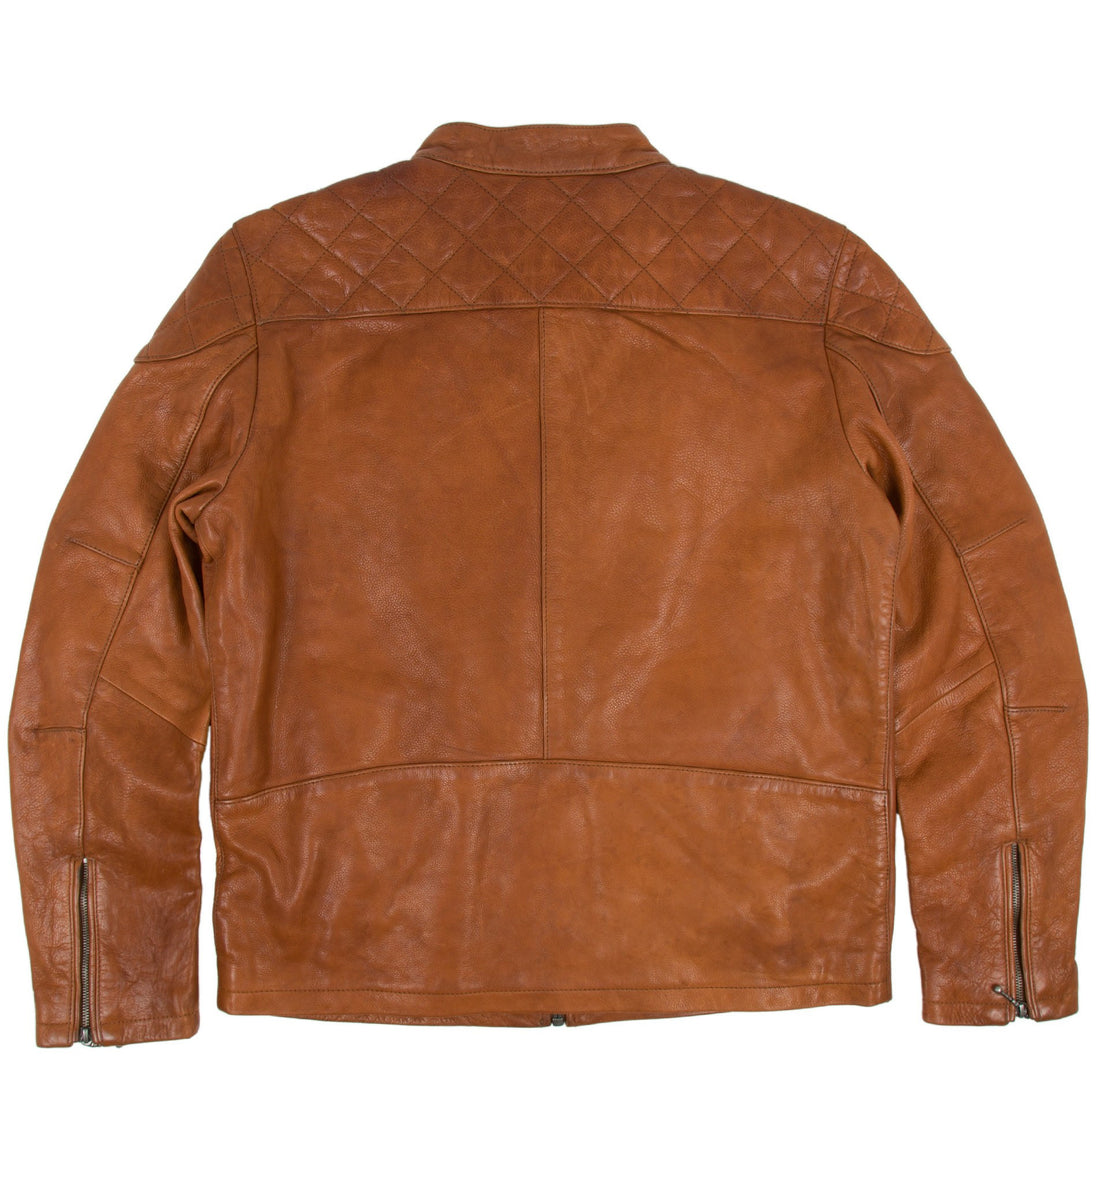 Elsinore Leather Jacket